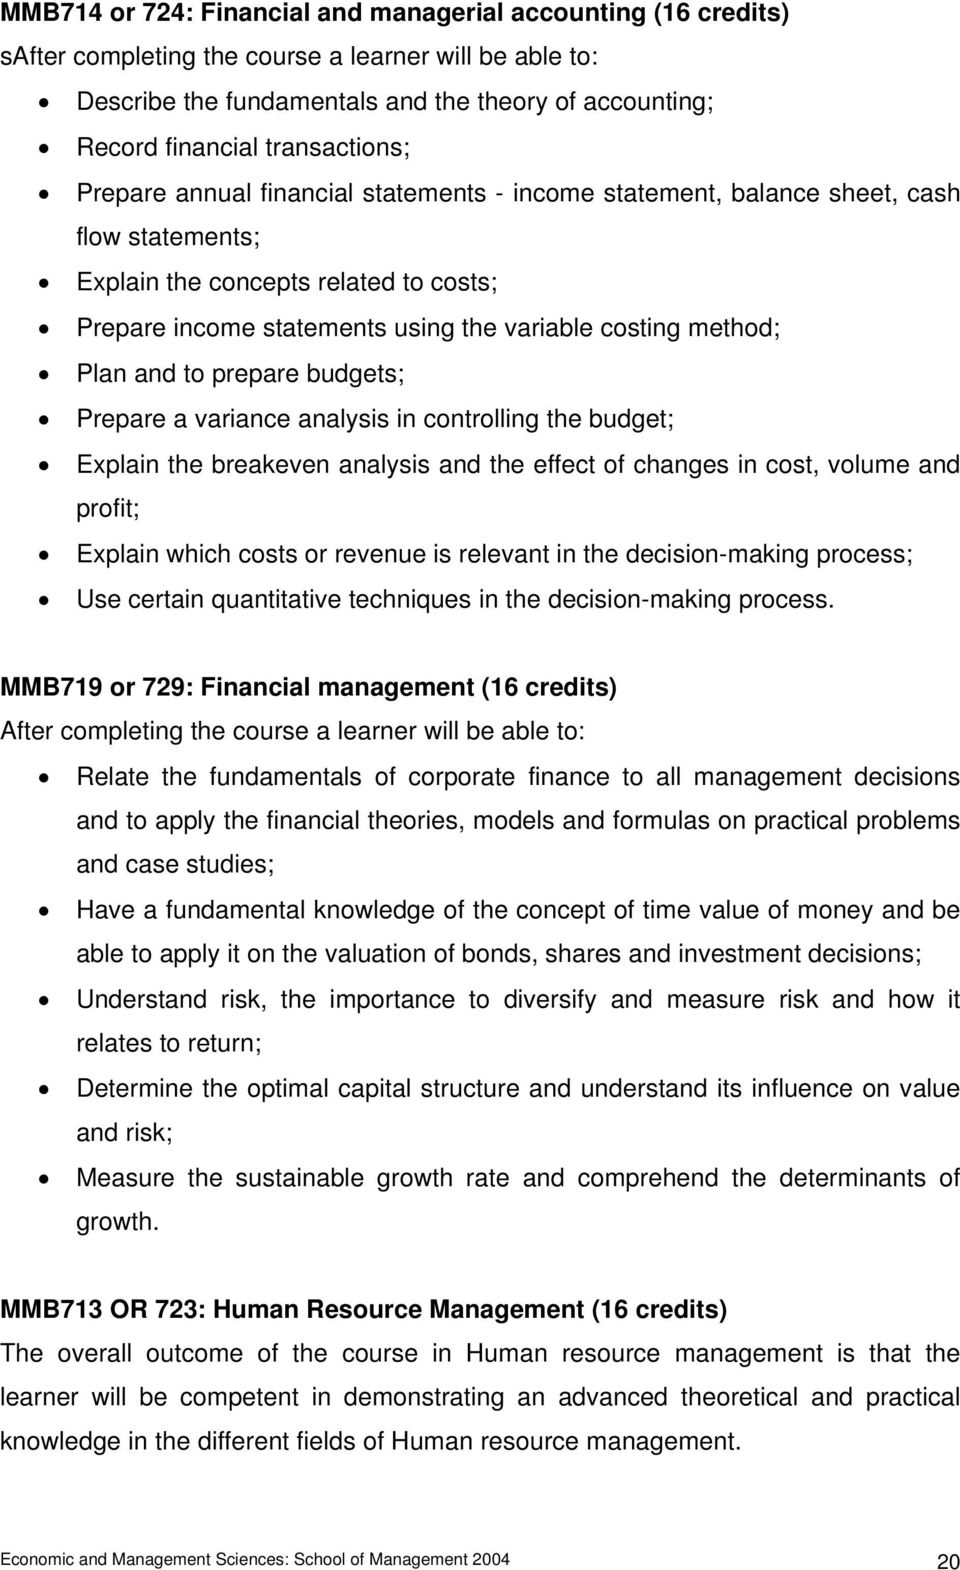 method; Plan and to prepare budgets; Prepare a variance analysis in controlling the budget; Explain the breakeven analysis and the effect of changes in cost, volume and profit; Explain which costs or